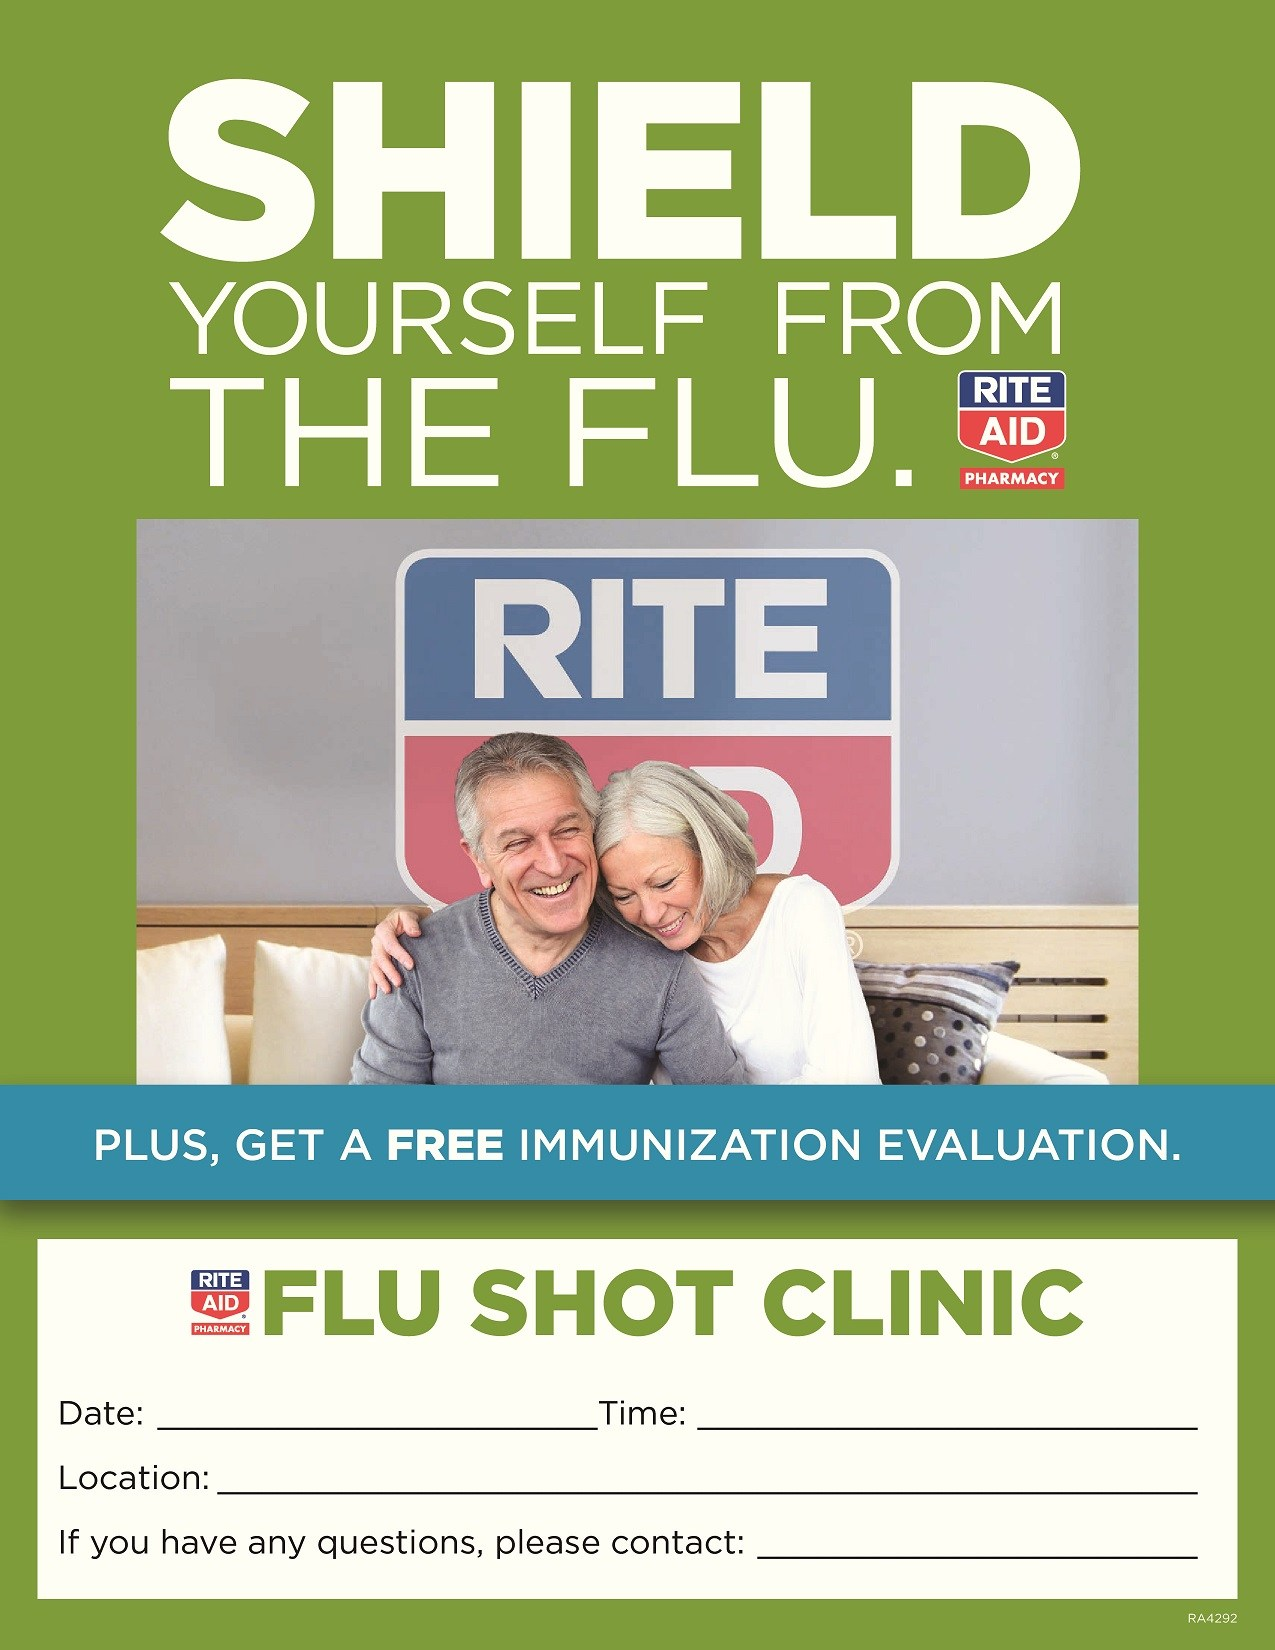 Flu Vaccine Flyers Free: Detroit Service Learning Academy